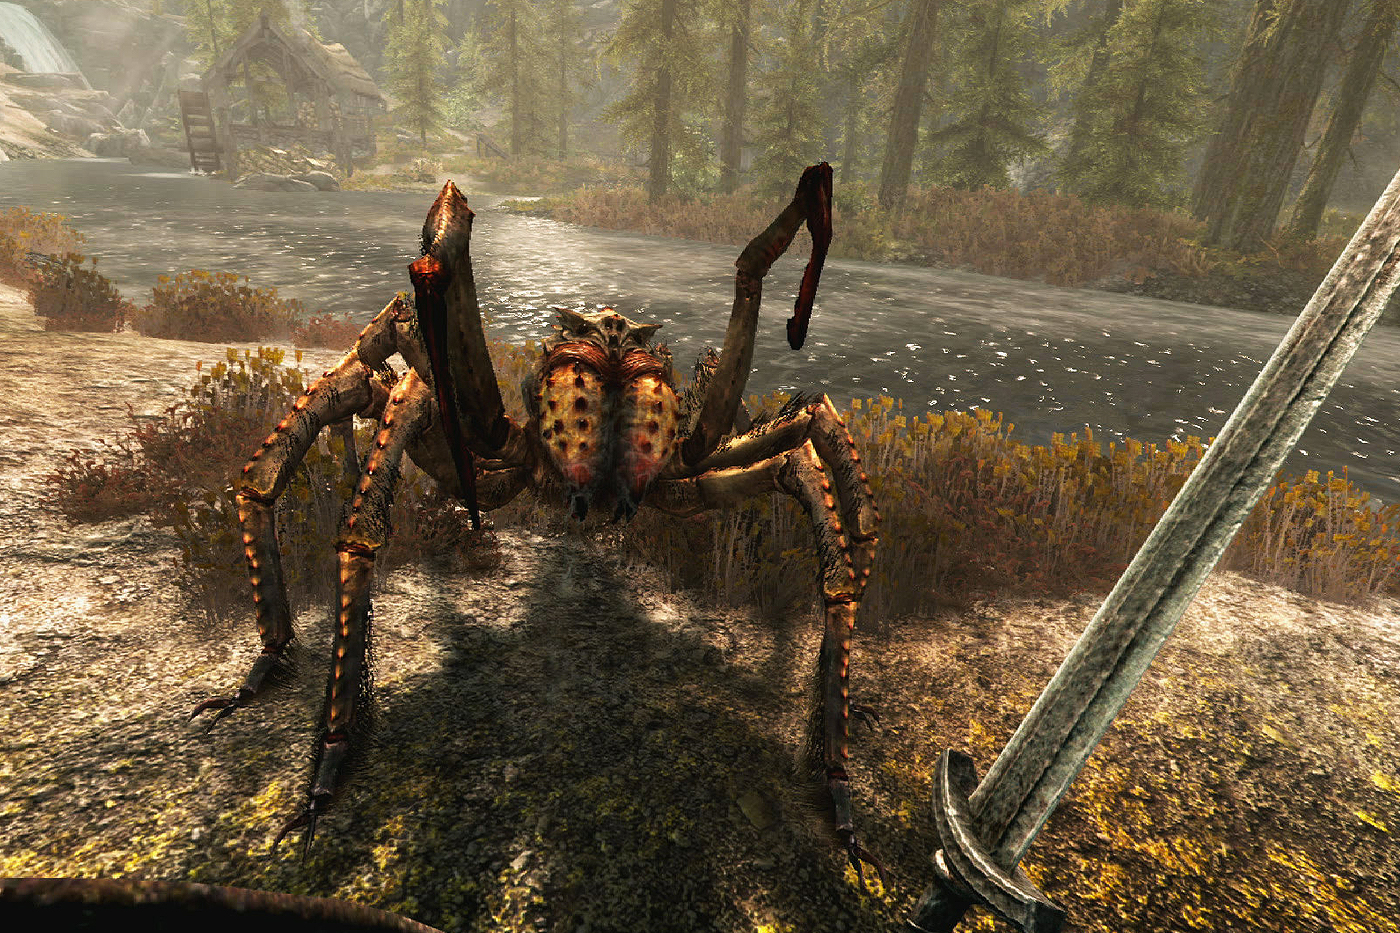 Spider Crab Creature in the Elder Scrolls V Skyrim VR